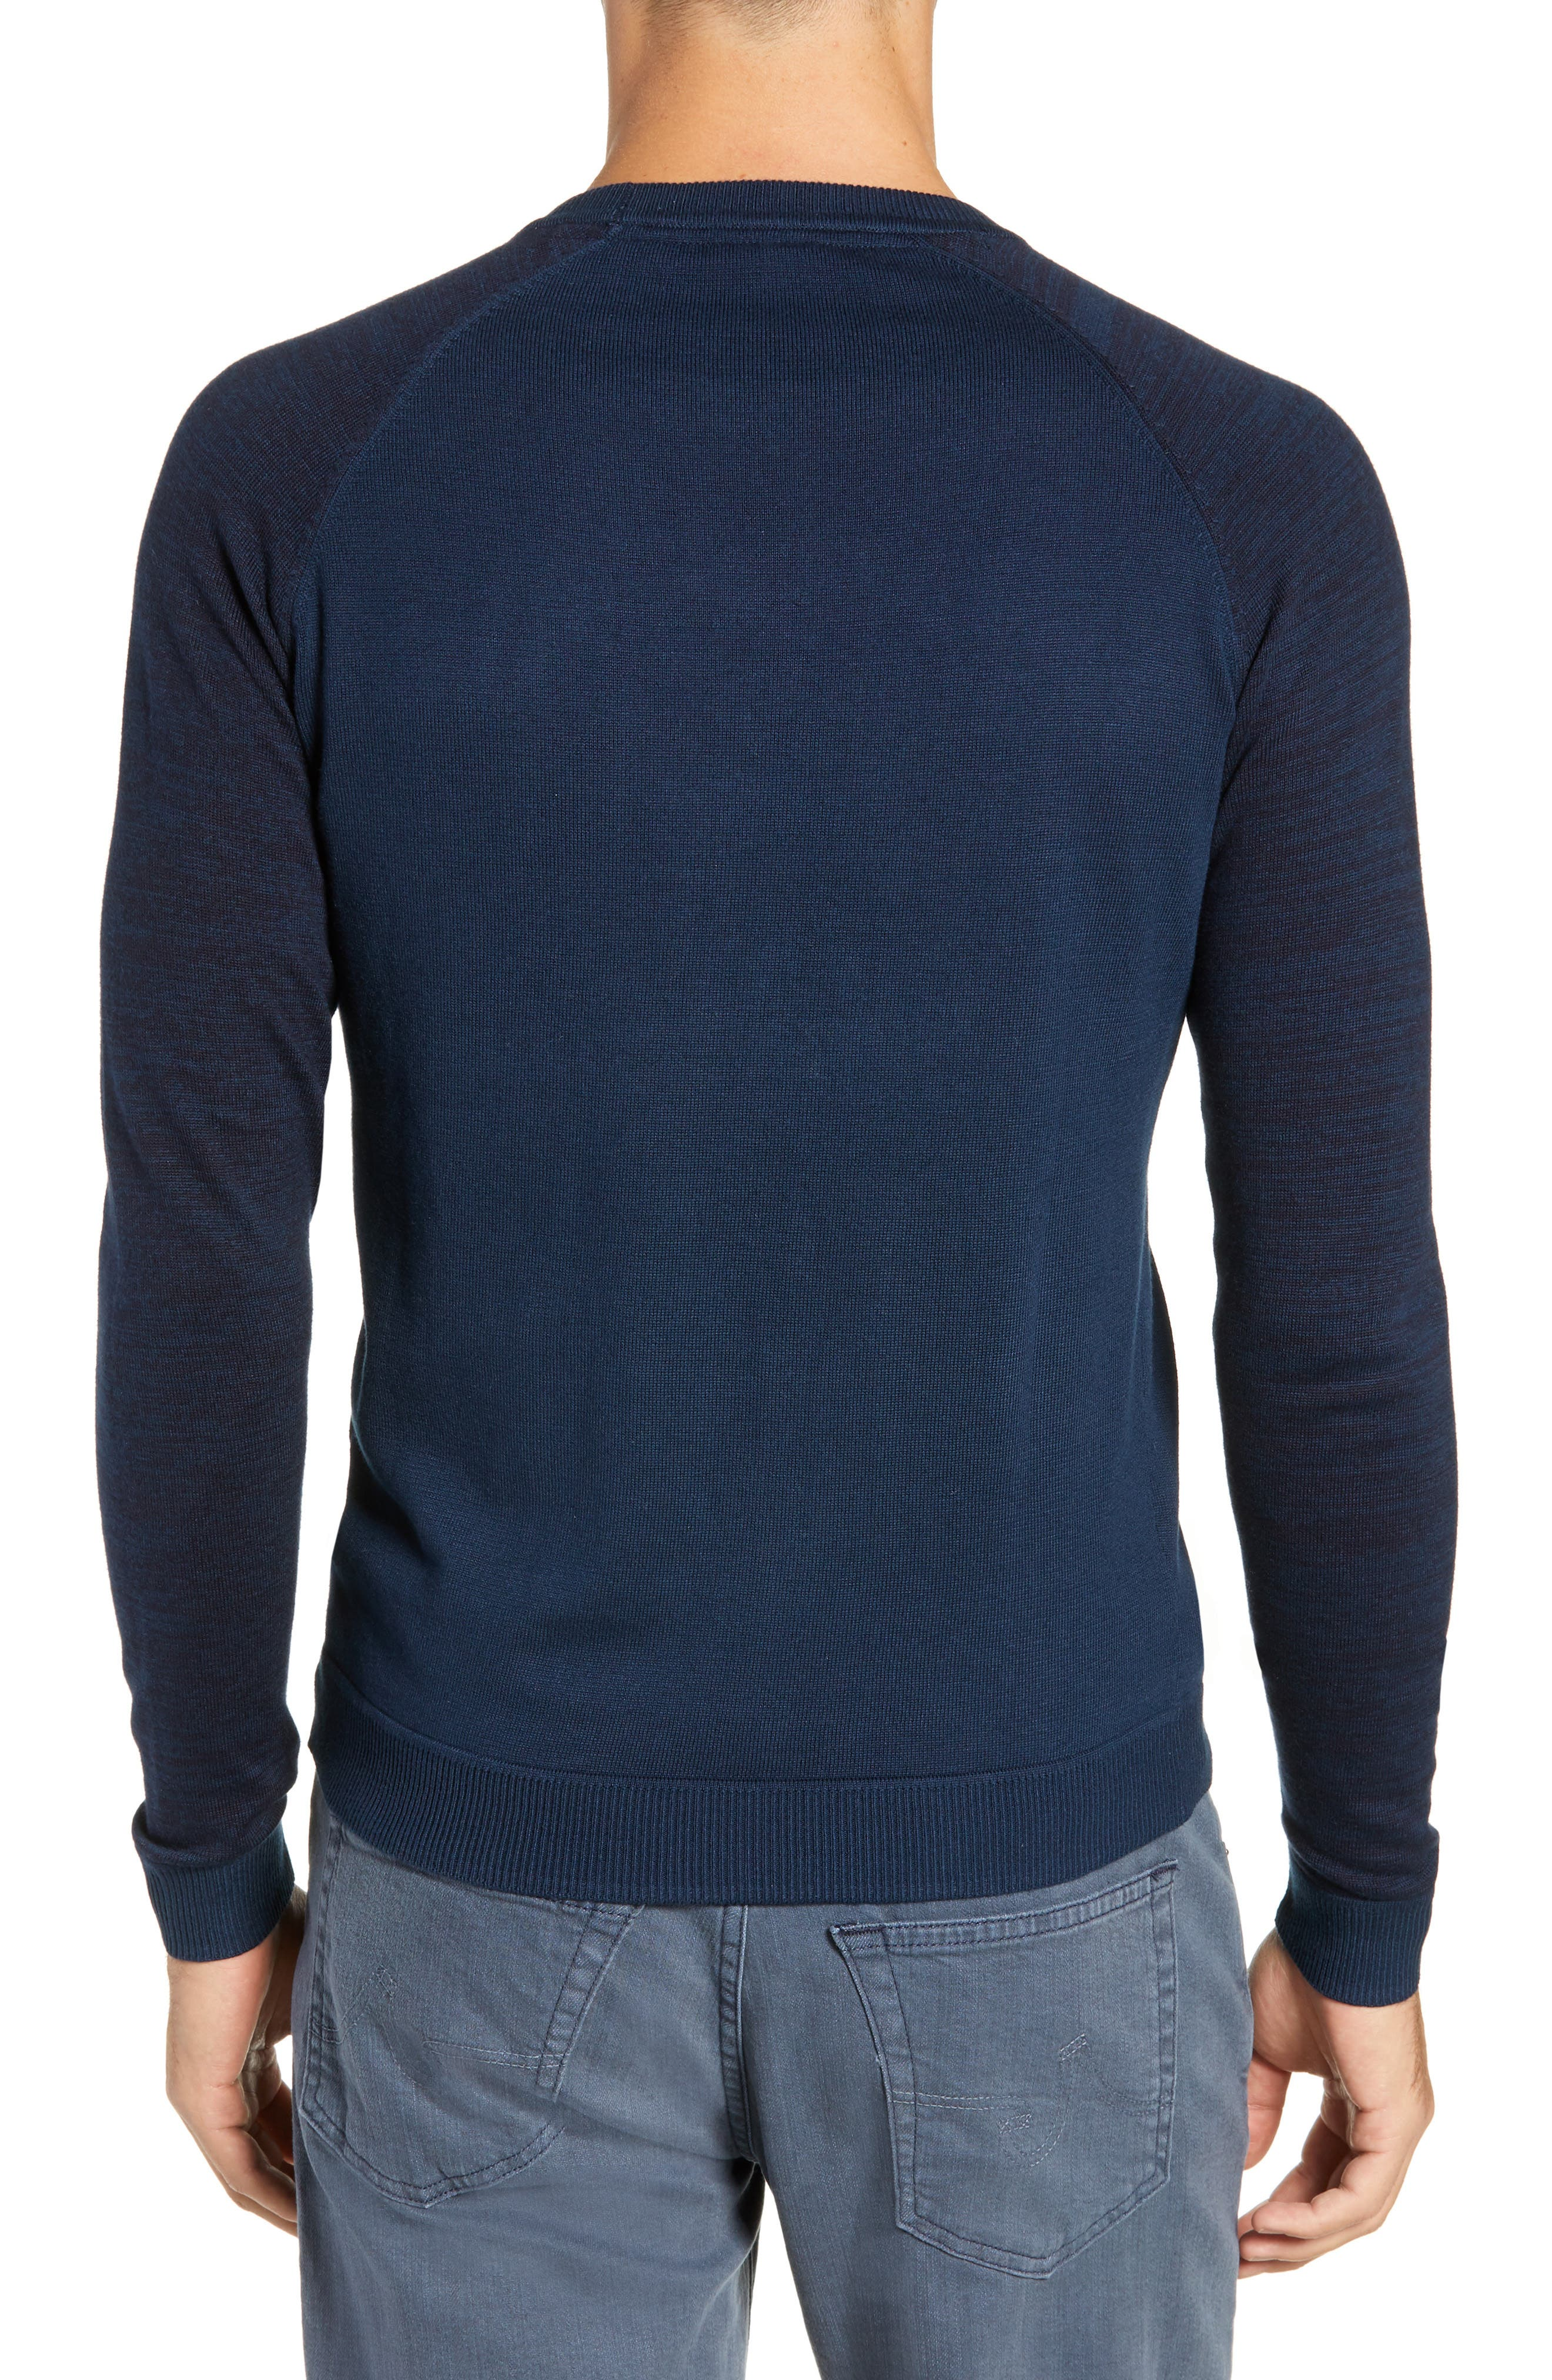 Cornfed Slim Fit Sweater,                             Alternate thumbnail 2, color,                             TEAL-BLUE